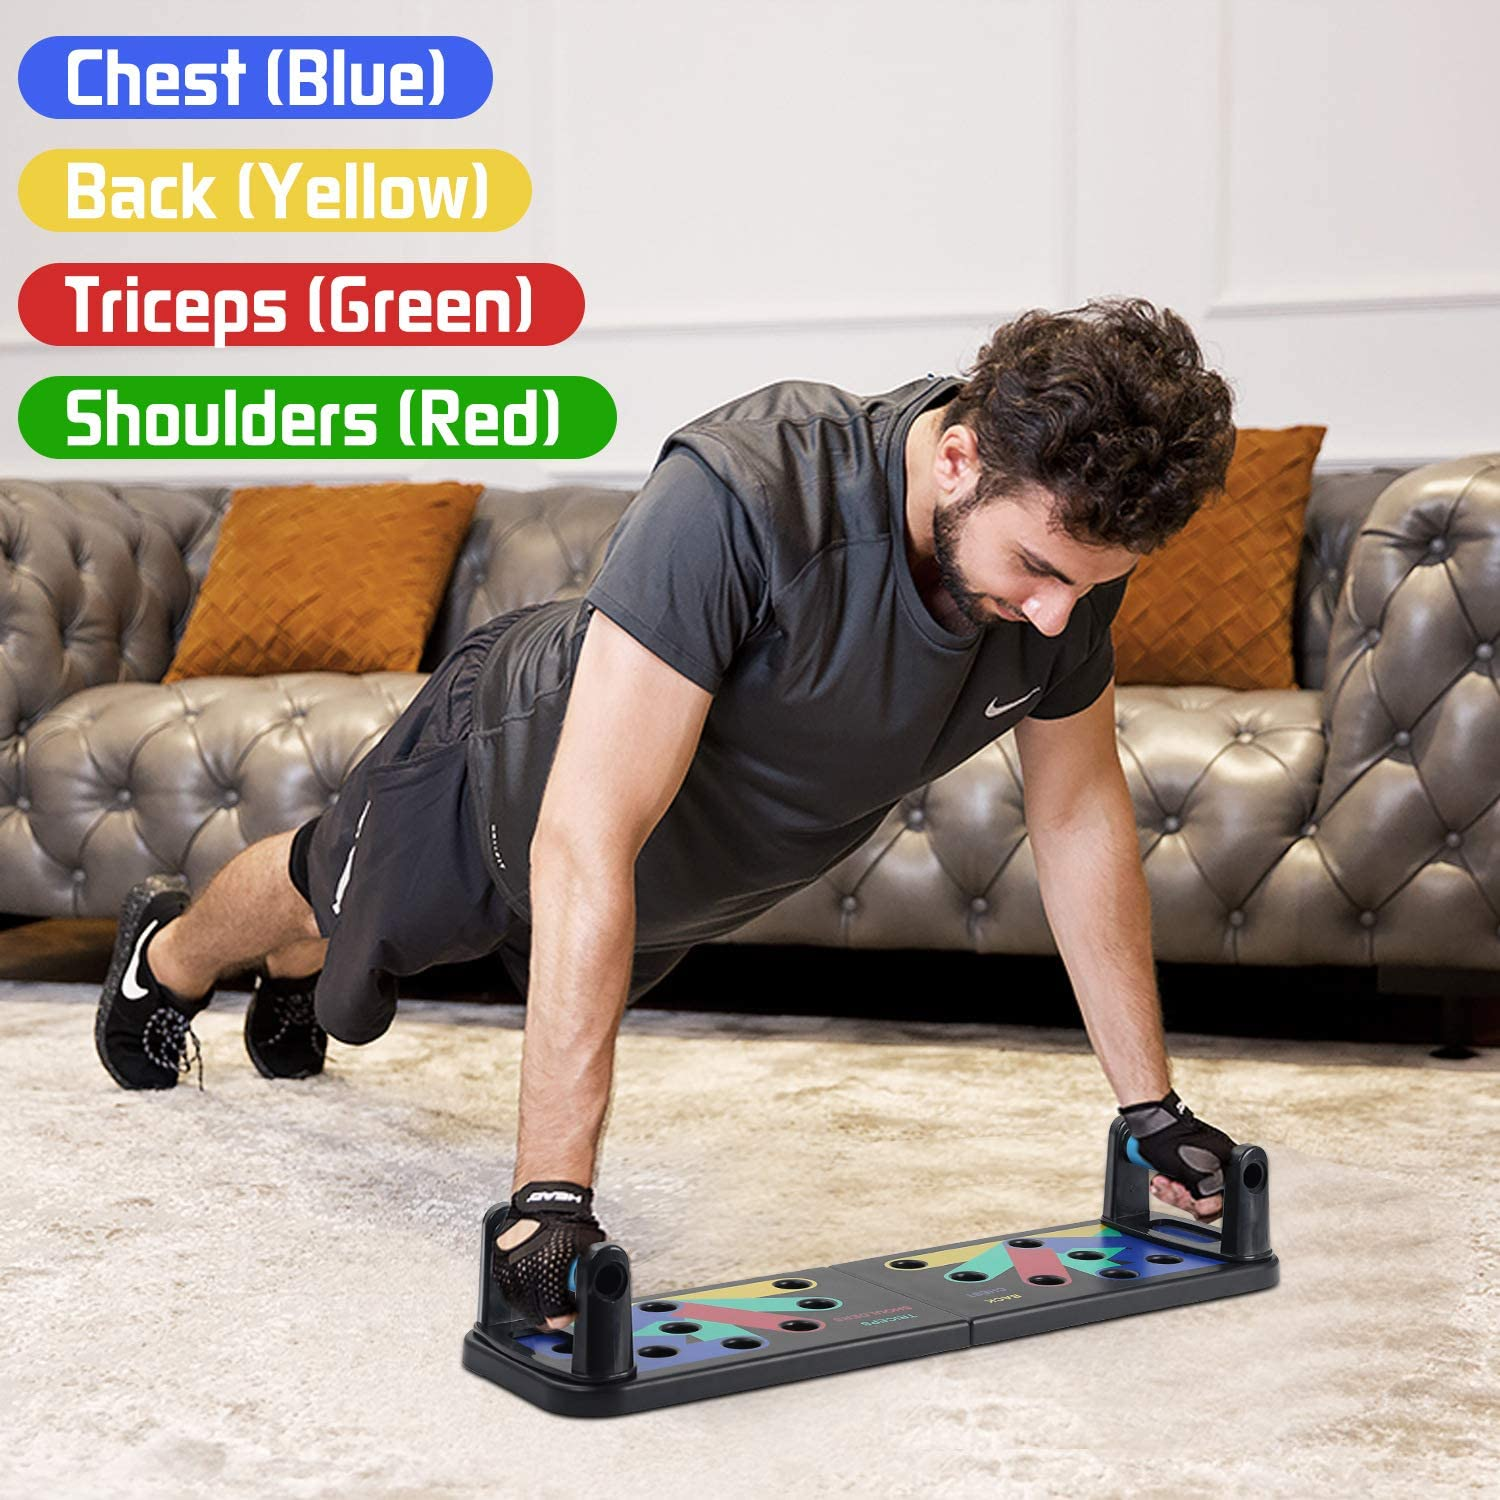 Body Strength Building Exercise Tools for Push up for Men Women Home Fitness Training PJs Push Up Board Portable Bracket Board Push Up Training System